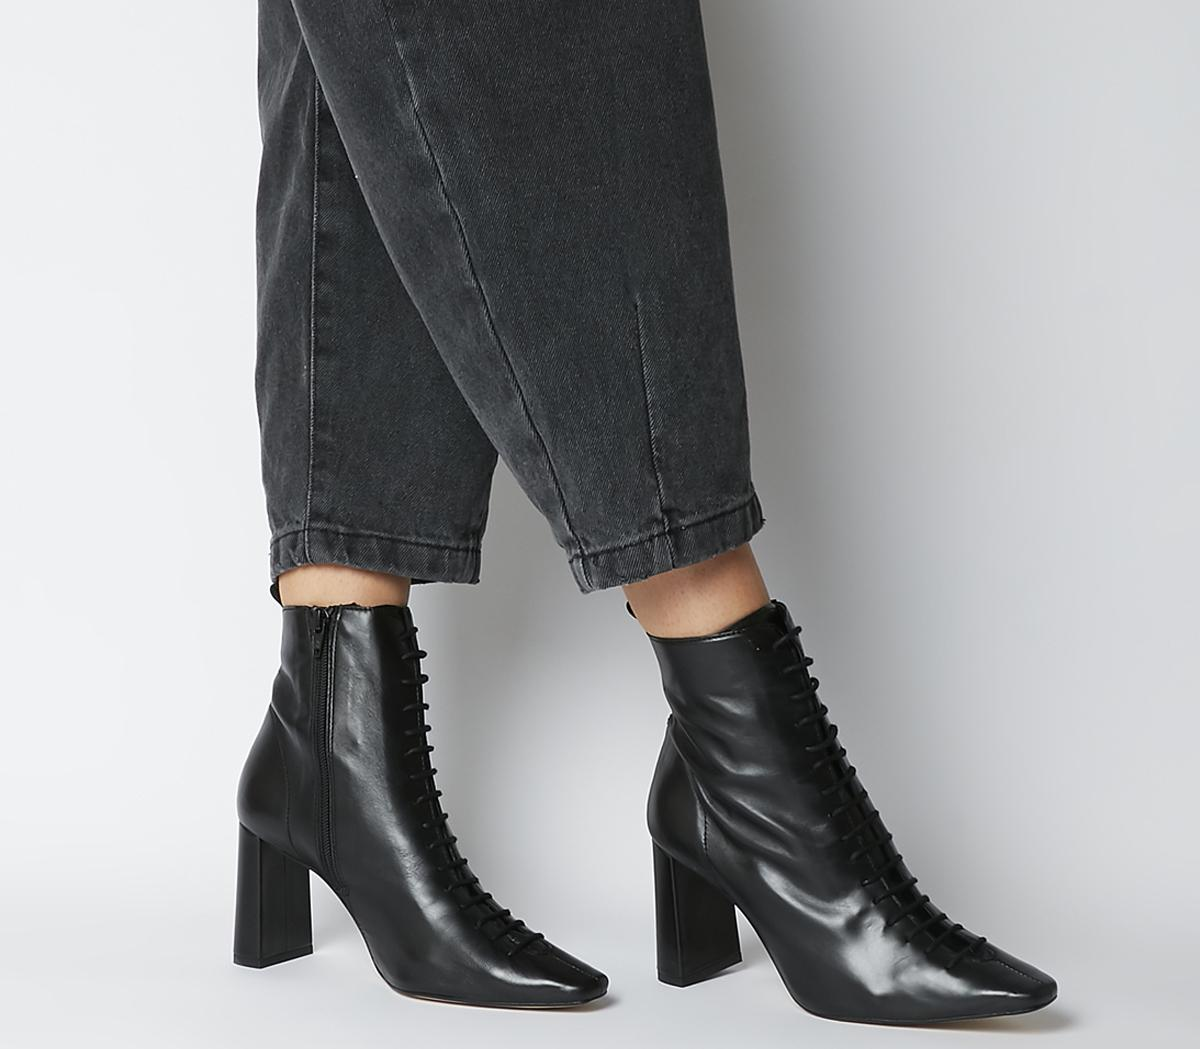 black boot heels lace up